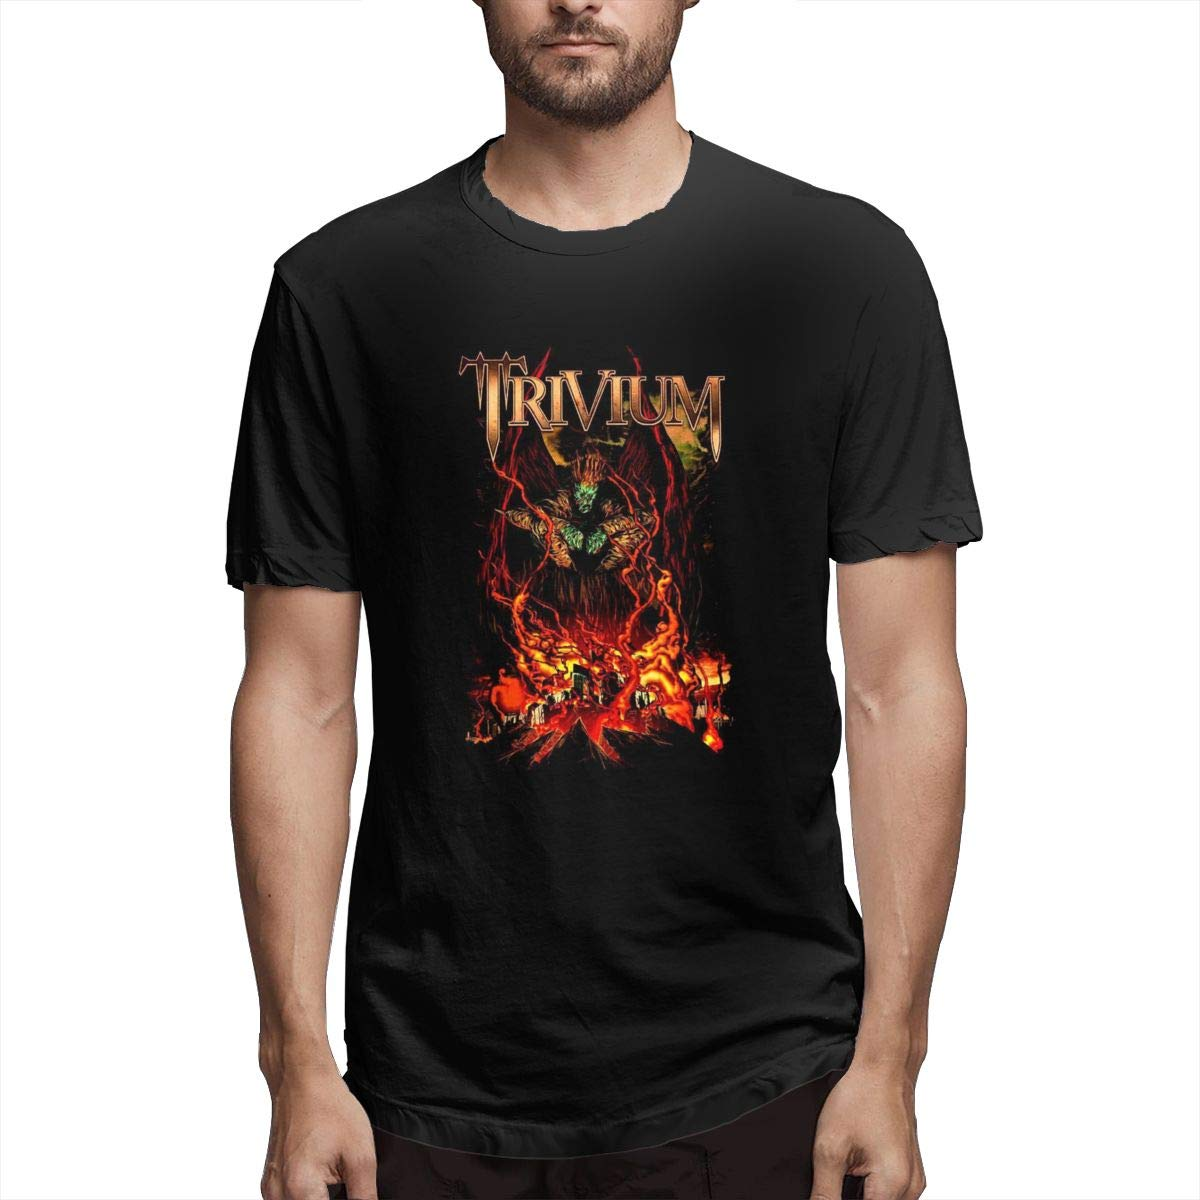 Sy Compact S Trivium Cool Short Sleeve Shirts